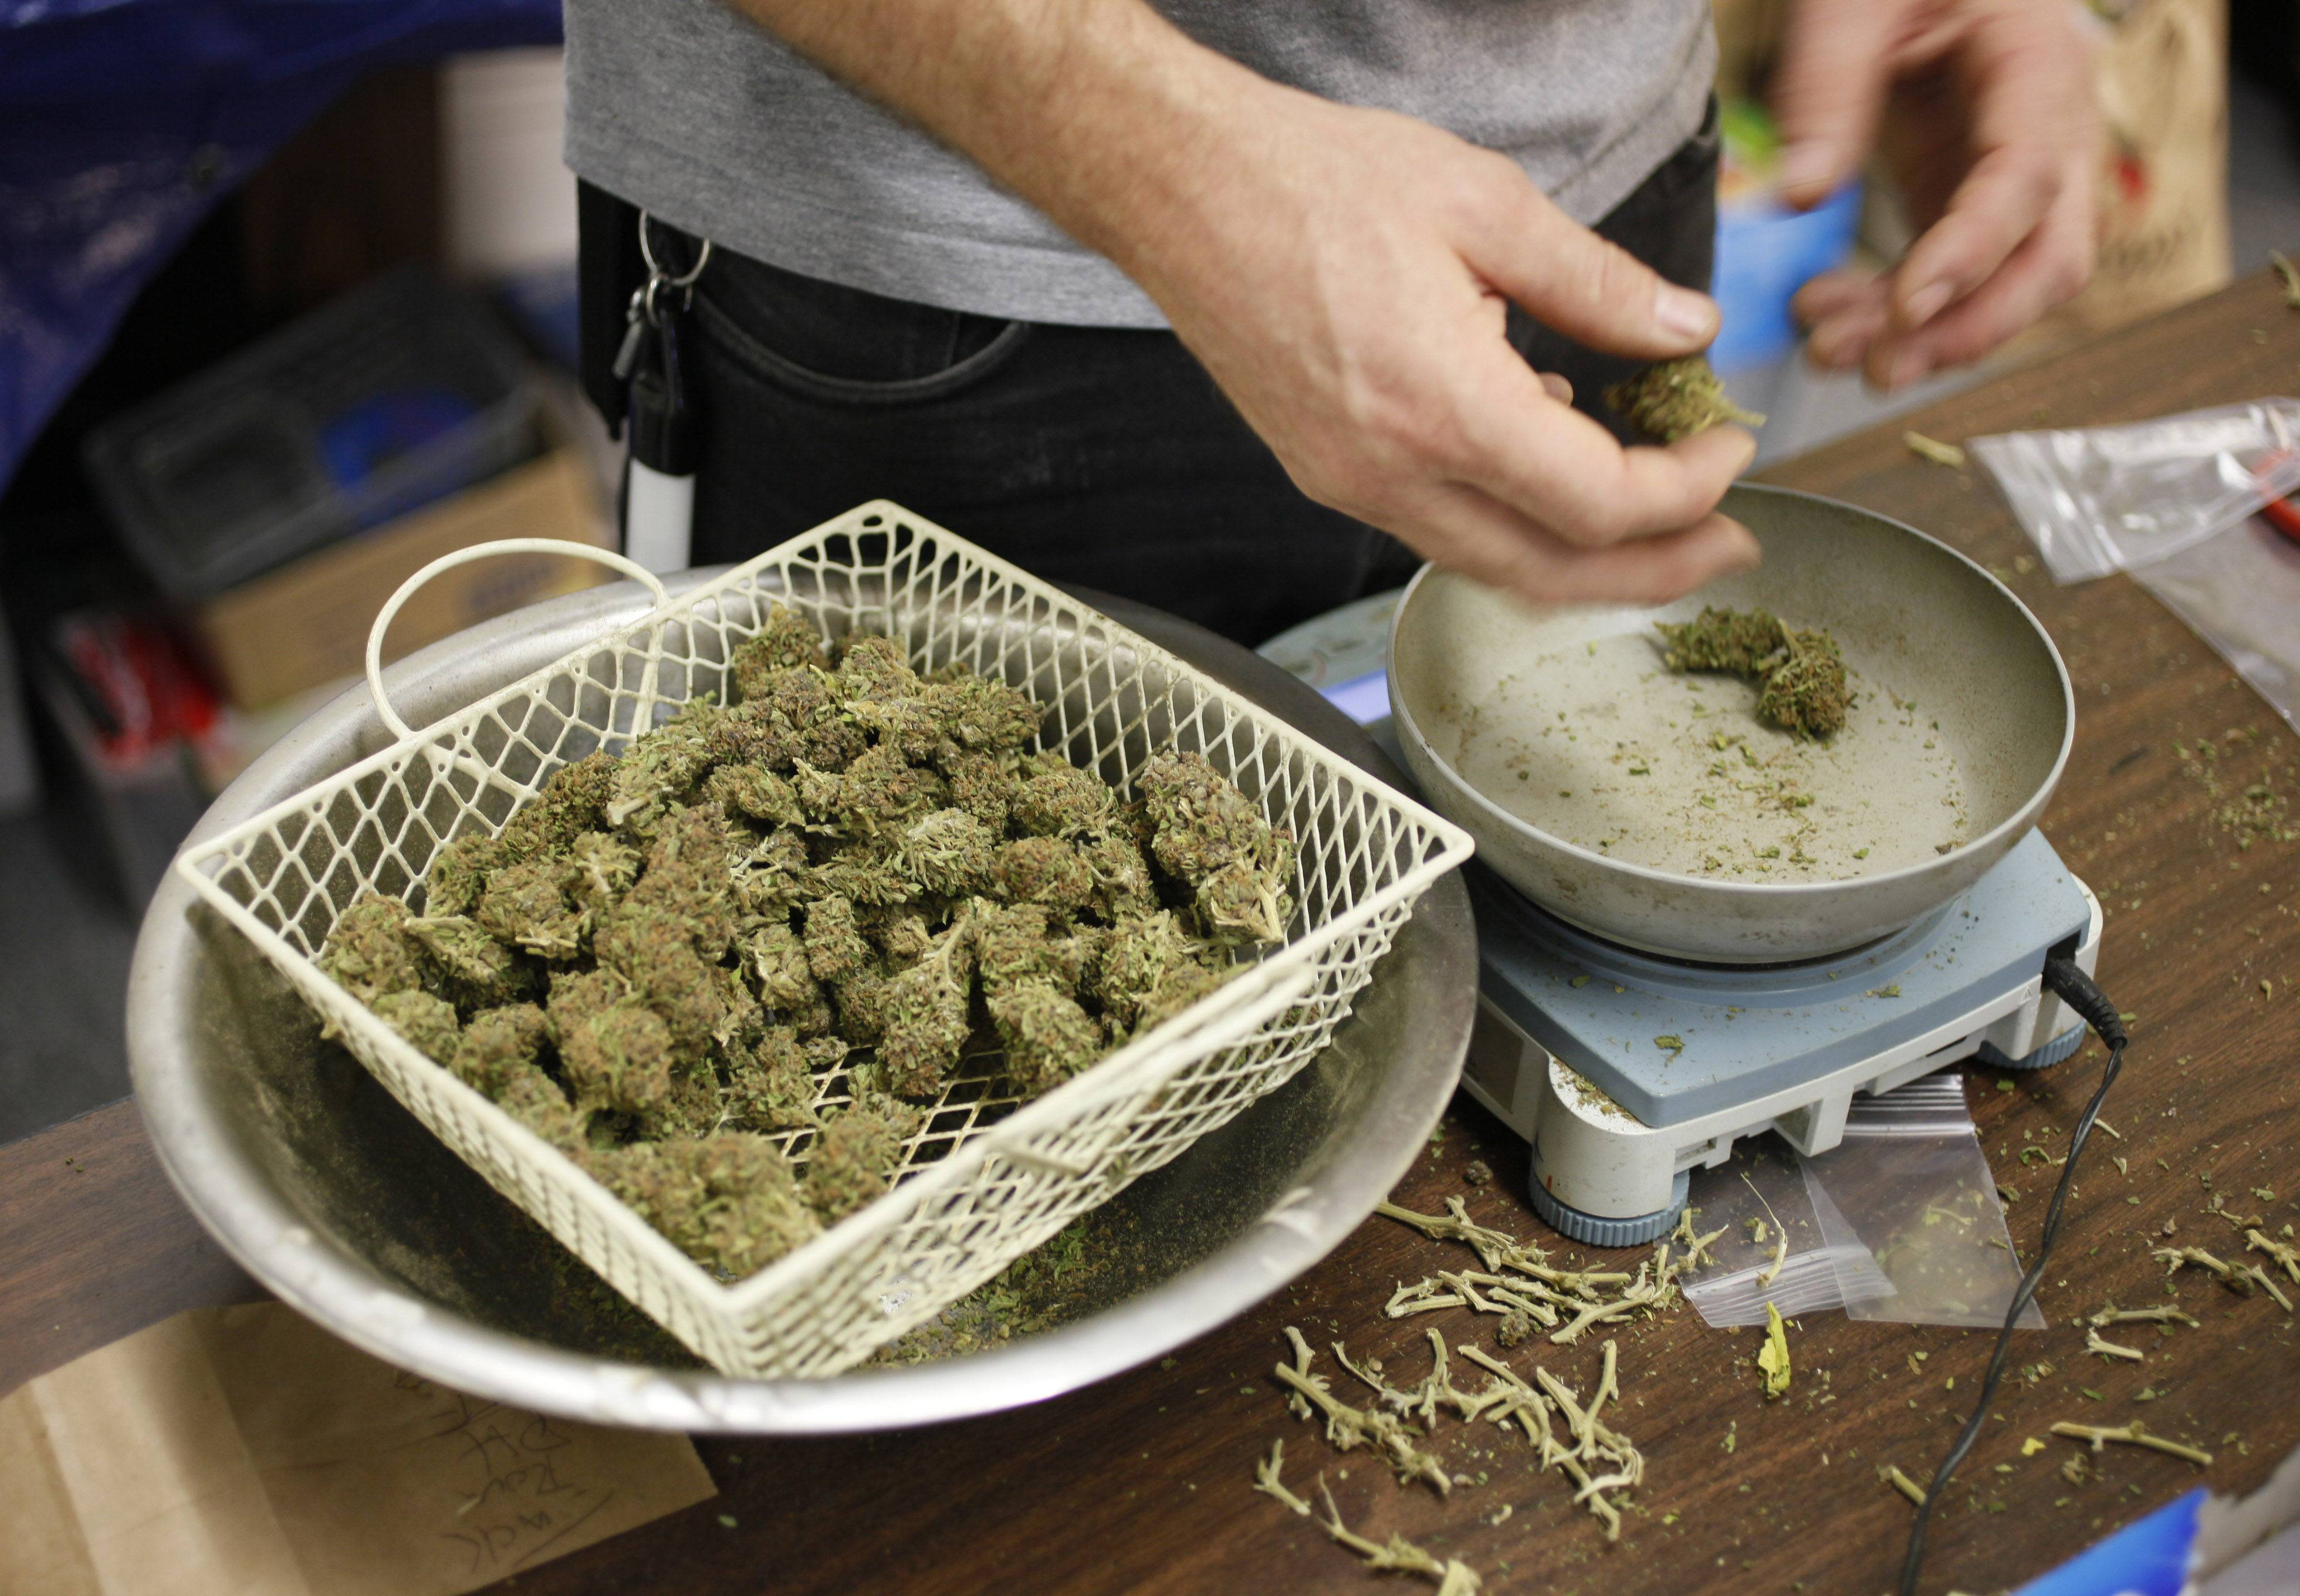 Mt. Prospect won't hold public hearings over pot dispensaries